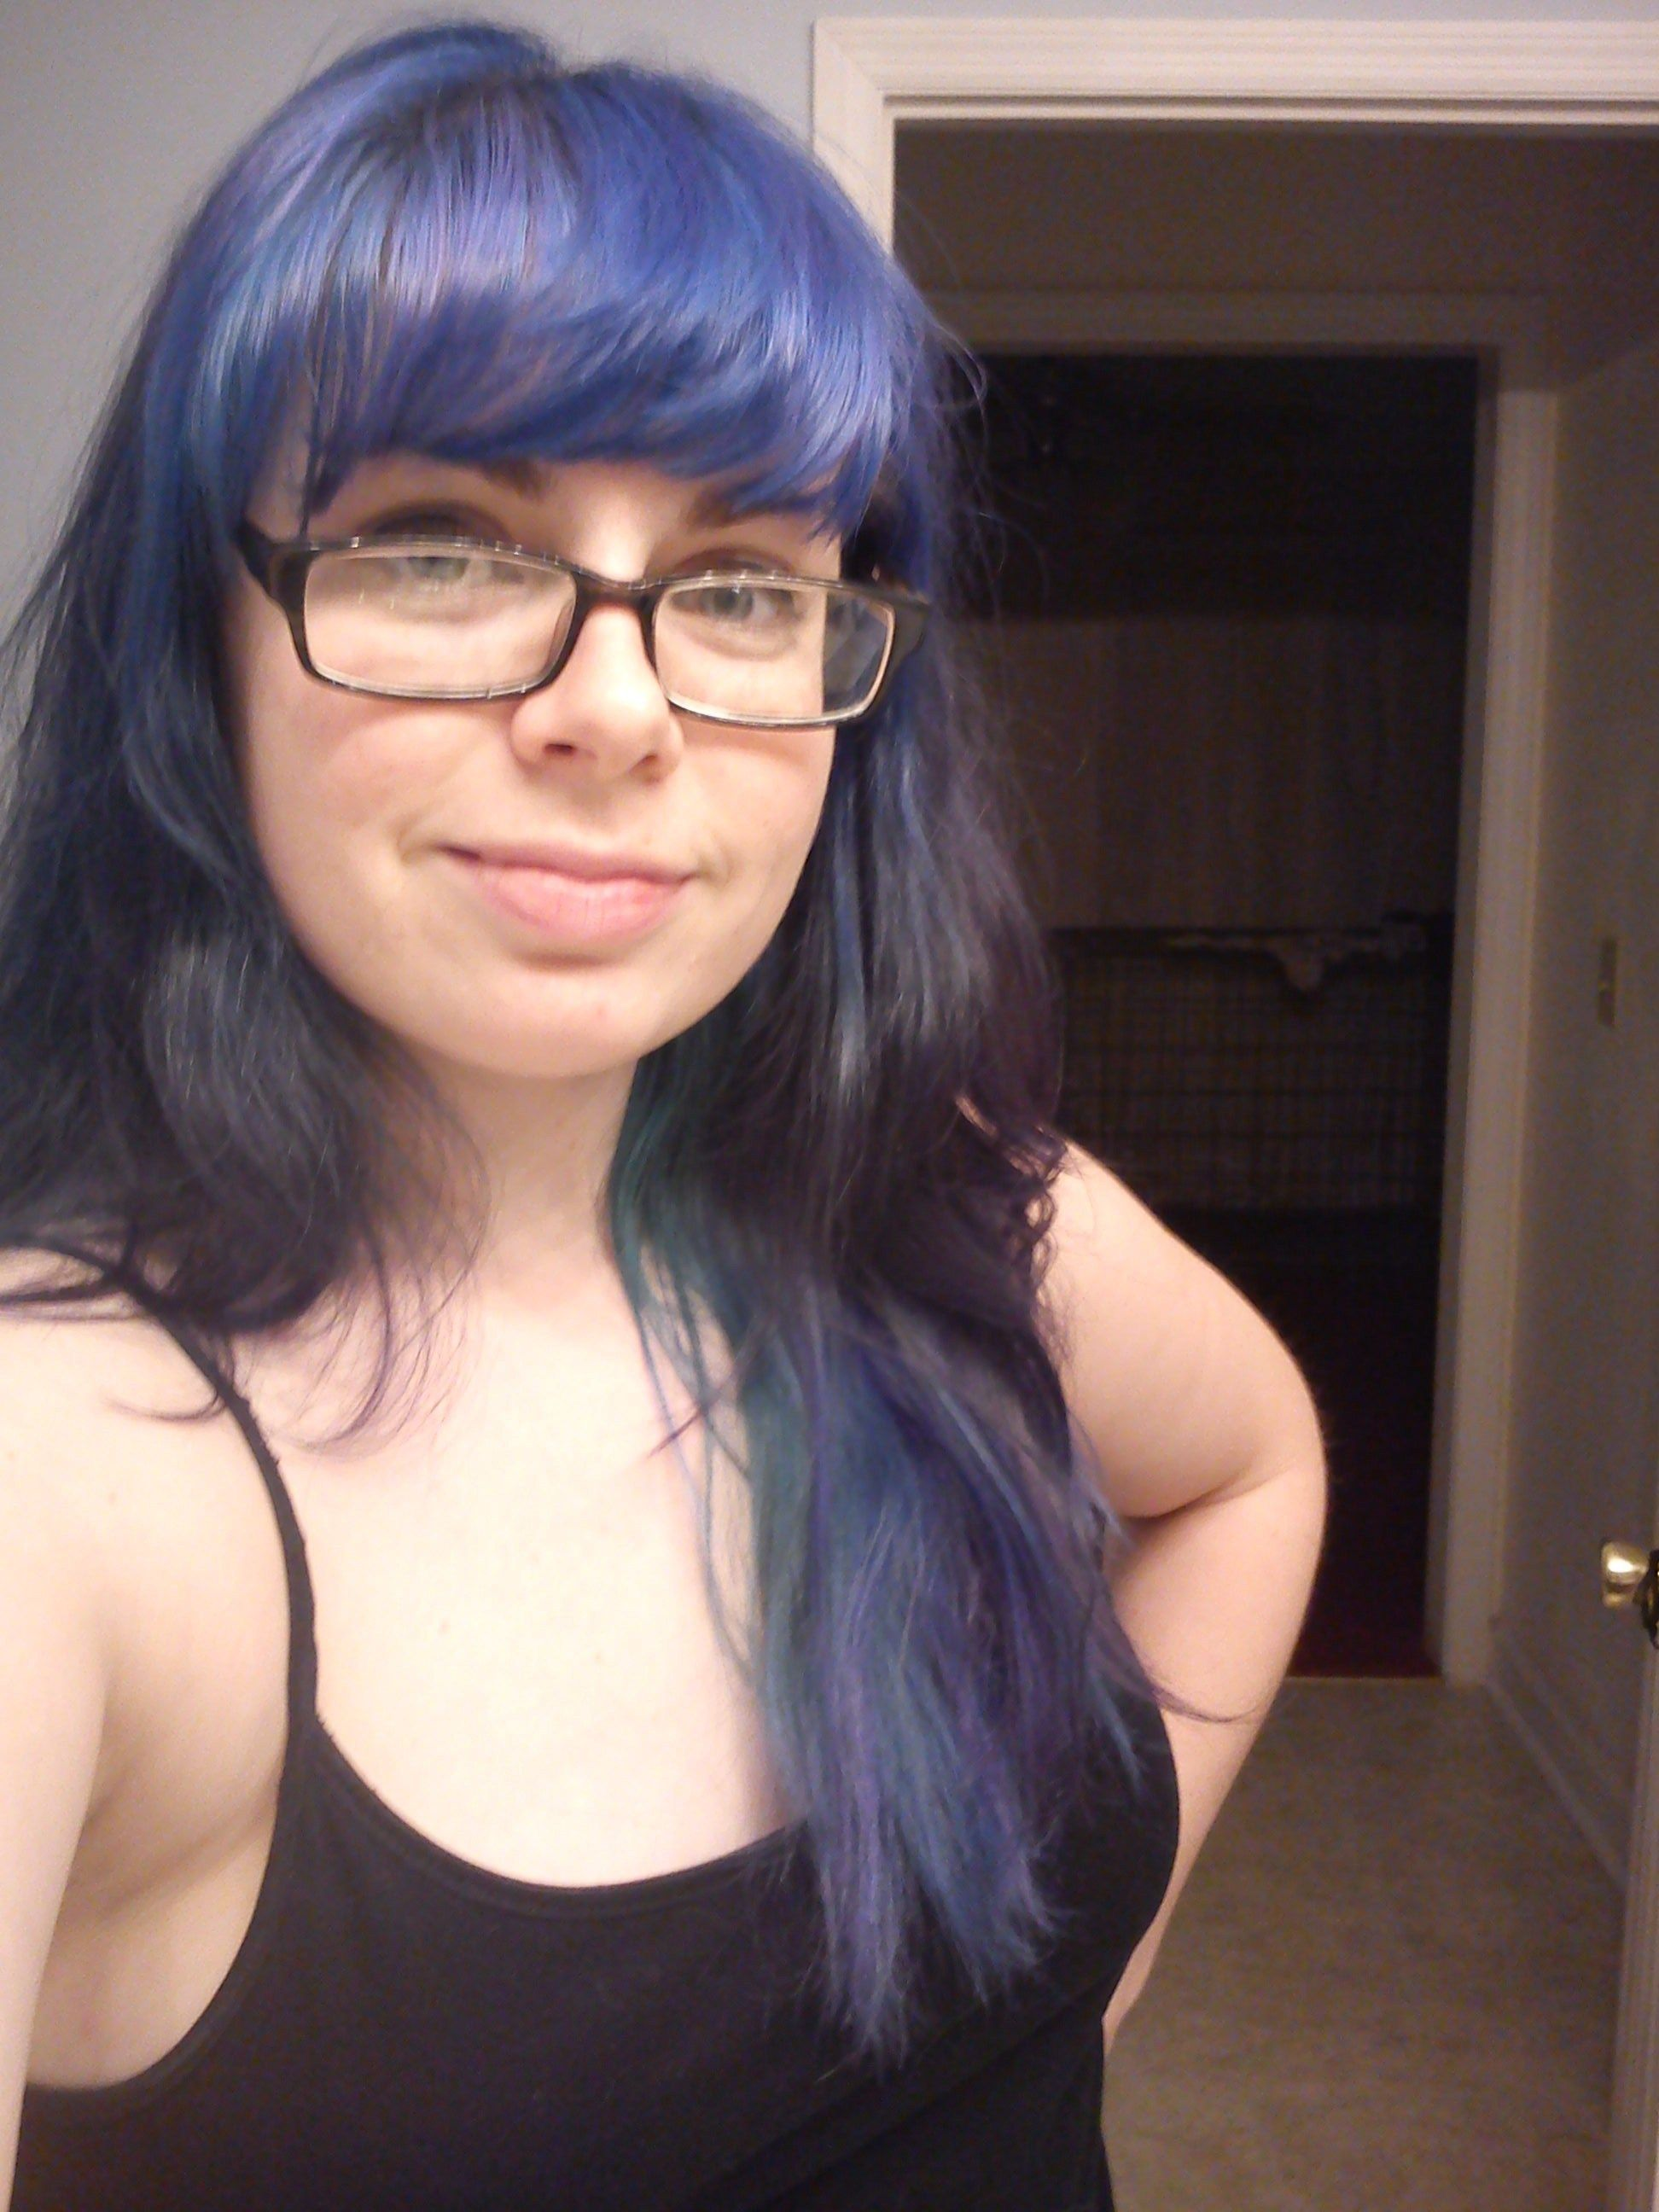 How To Bleach Hair And Dye It Blue What Works And What Doesn T Coconut Oil Bleached Hair Splat Hair Dye Vivid Hair Color